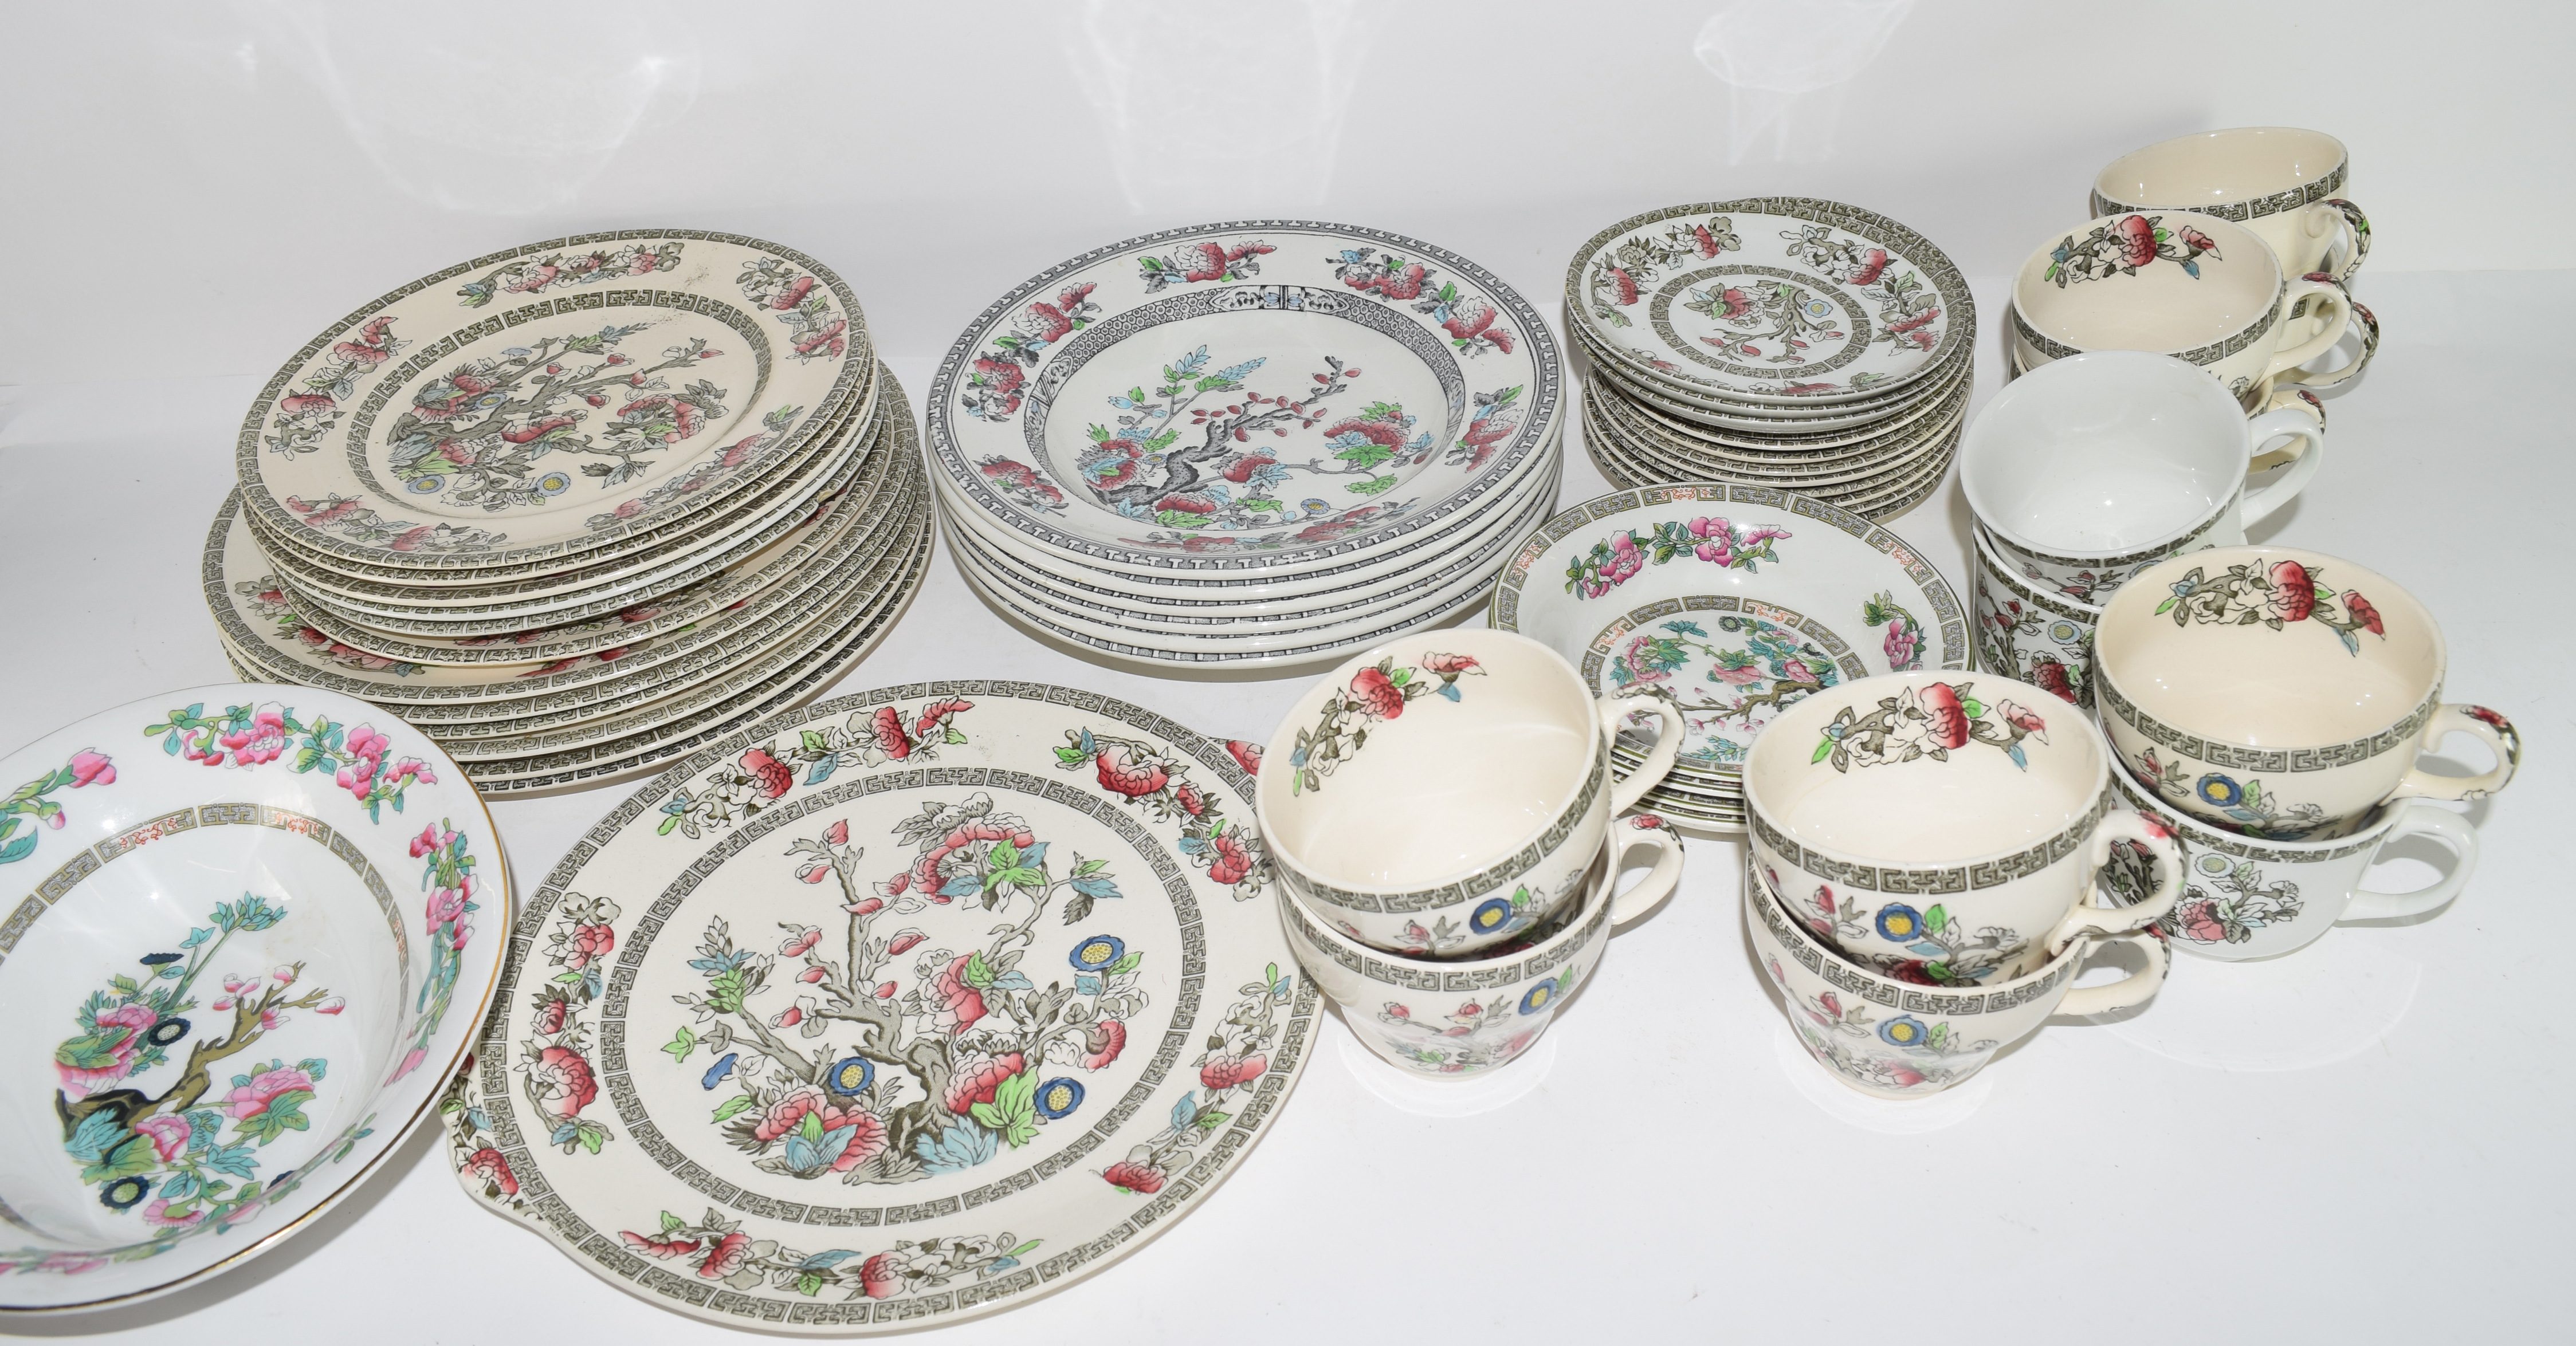 Extensive quantity of Johnson Bros tea and dinner wares all decorated in the Indian Tree pattern - Image 2 of 2